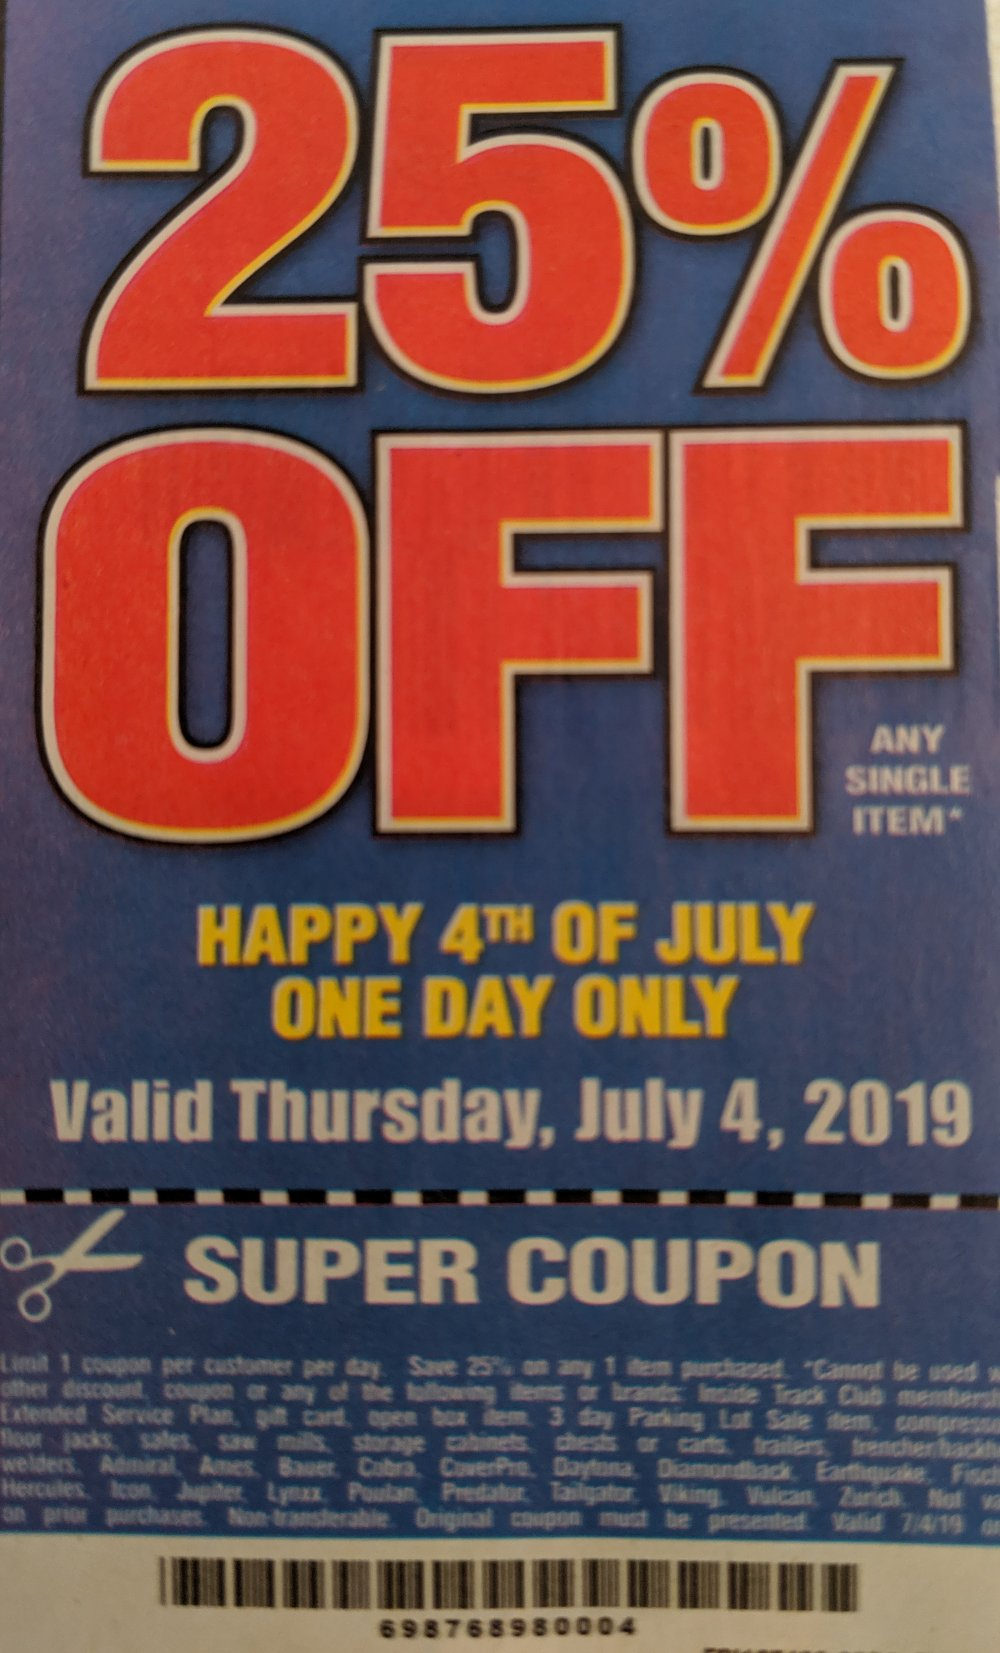 Harbor Freight Coupon, HF Coupons - 25% off - July 4th Only